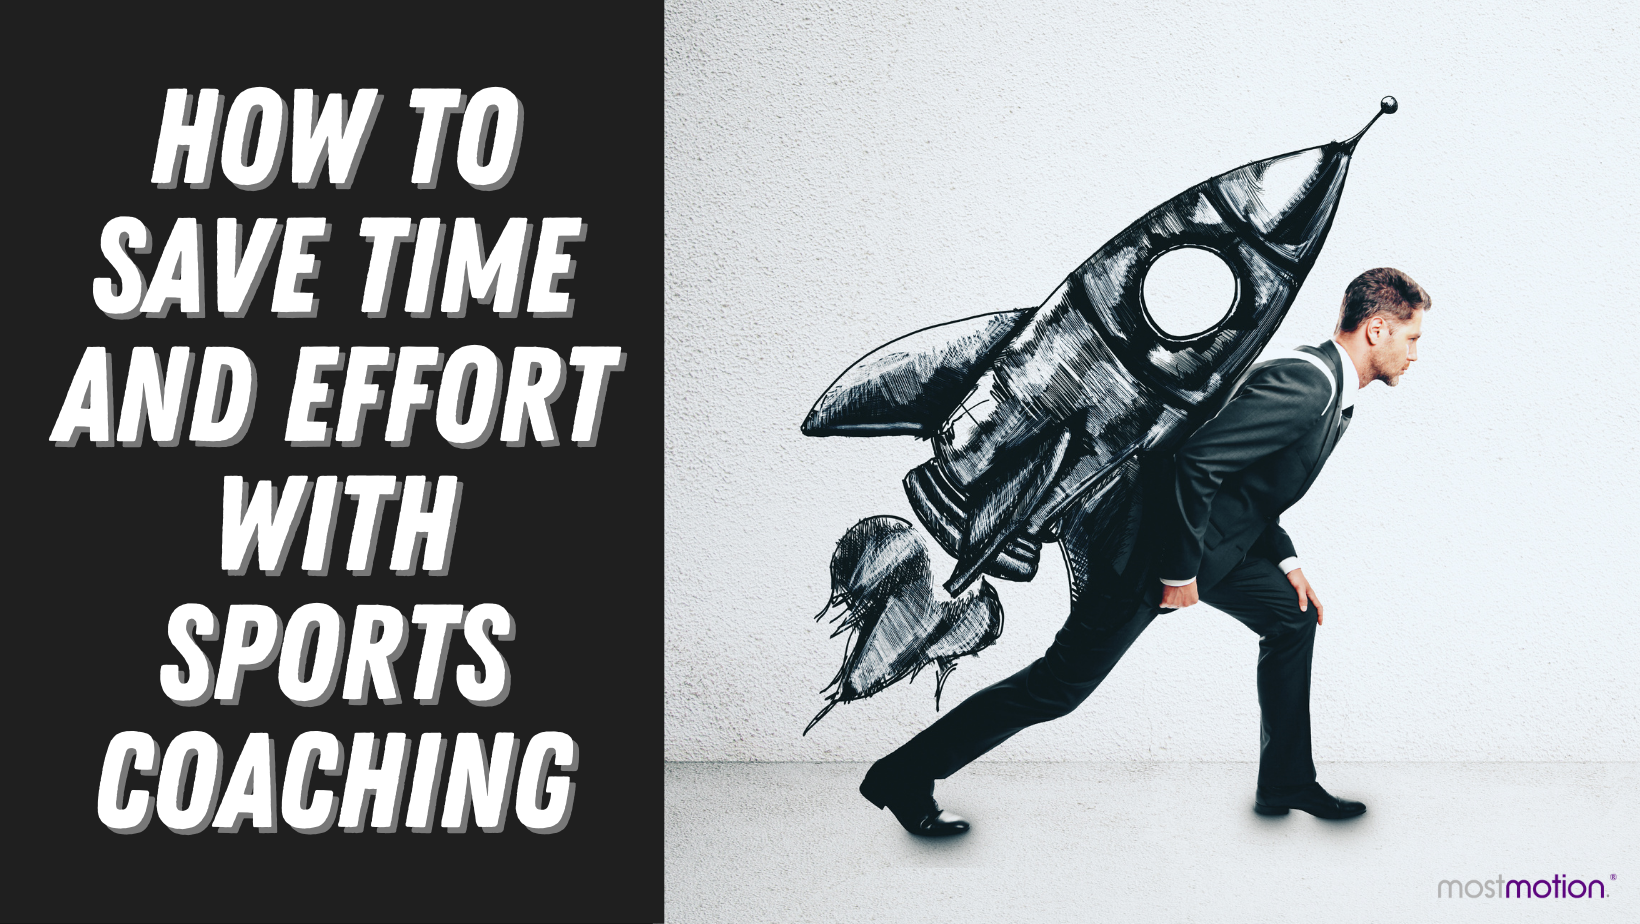 How to Save Time and Effort With Sports Coaching